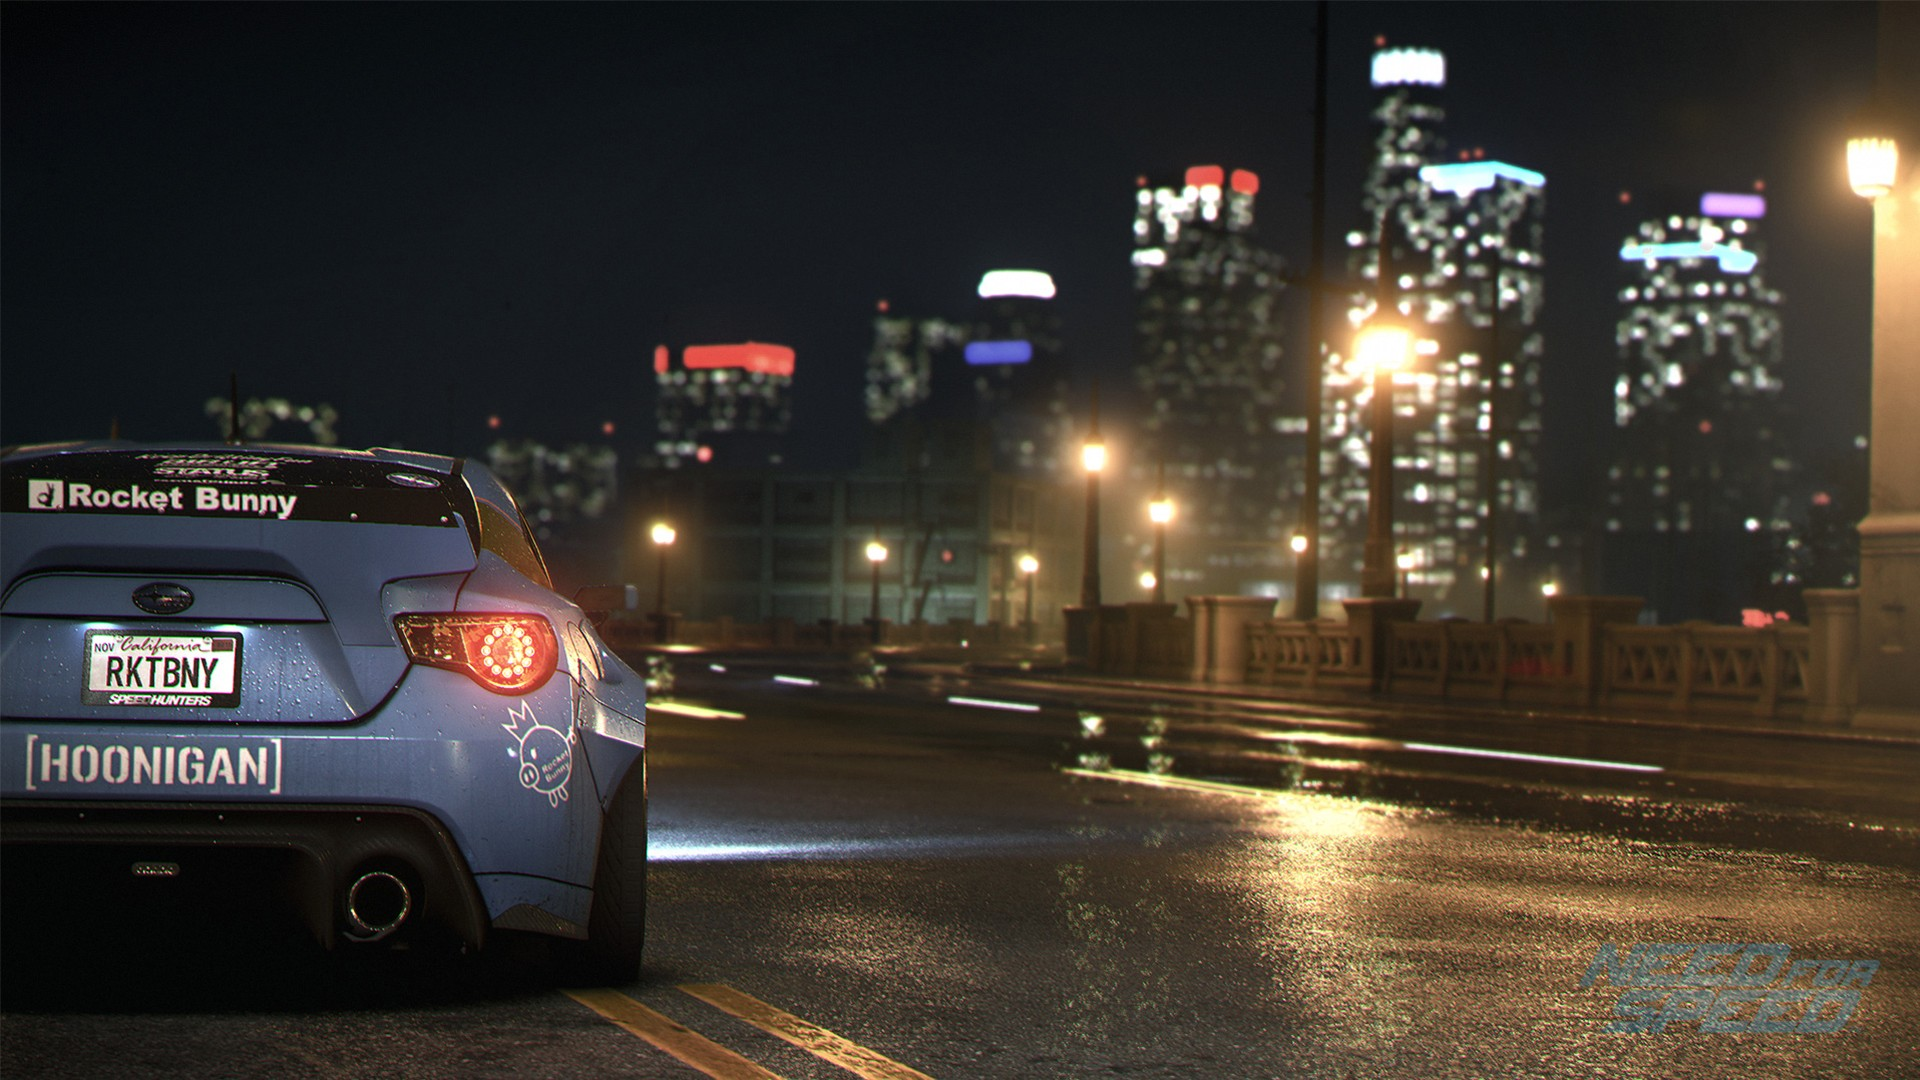 Car 5760x1080 Wallpaper Need For Speed 2015 Video Games Car Subaru Brz